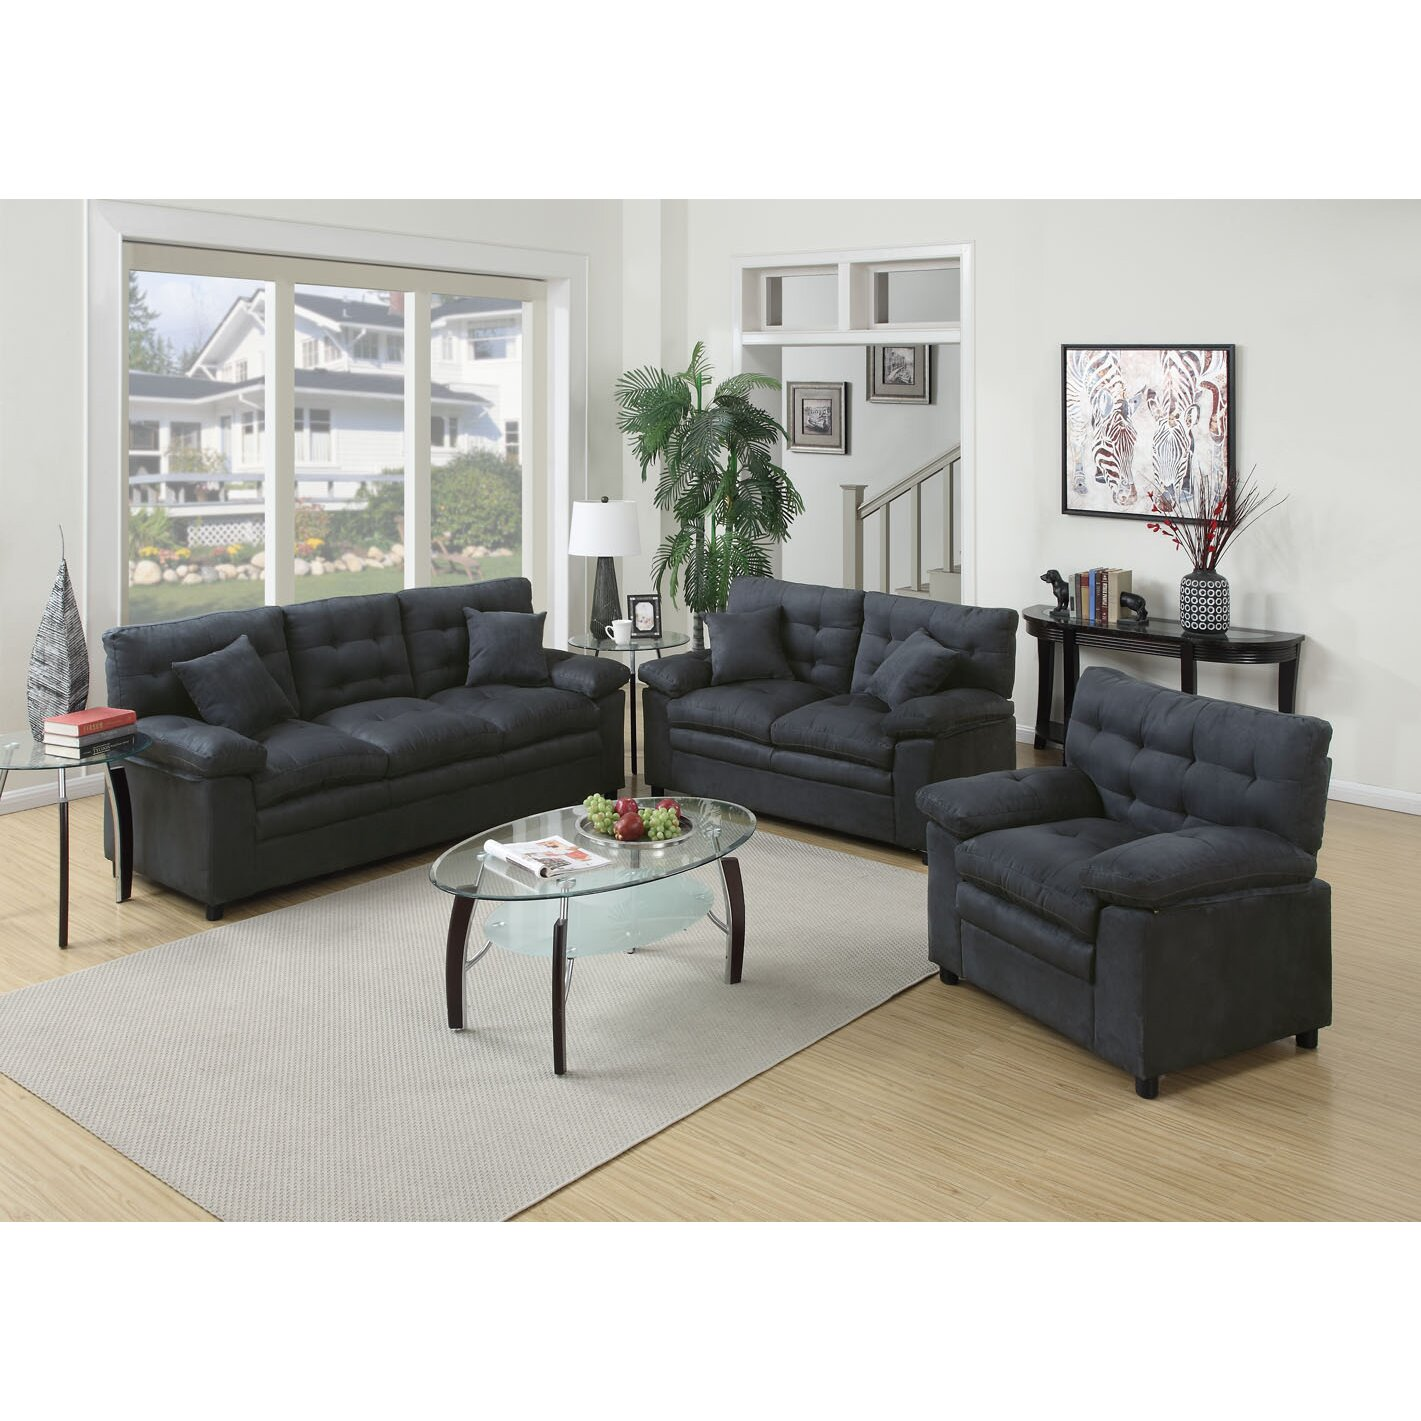 Poundex bobkona colona 3 piece living room set reviews for Living room collections